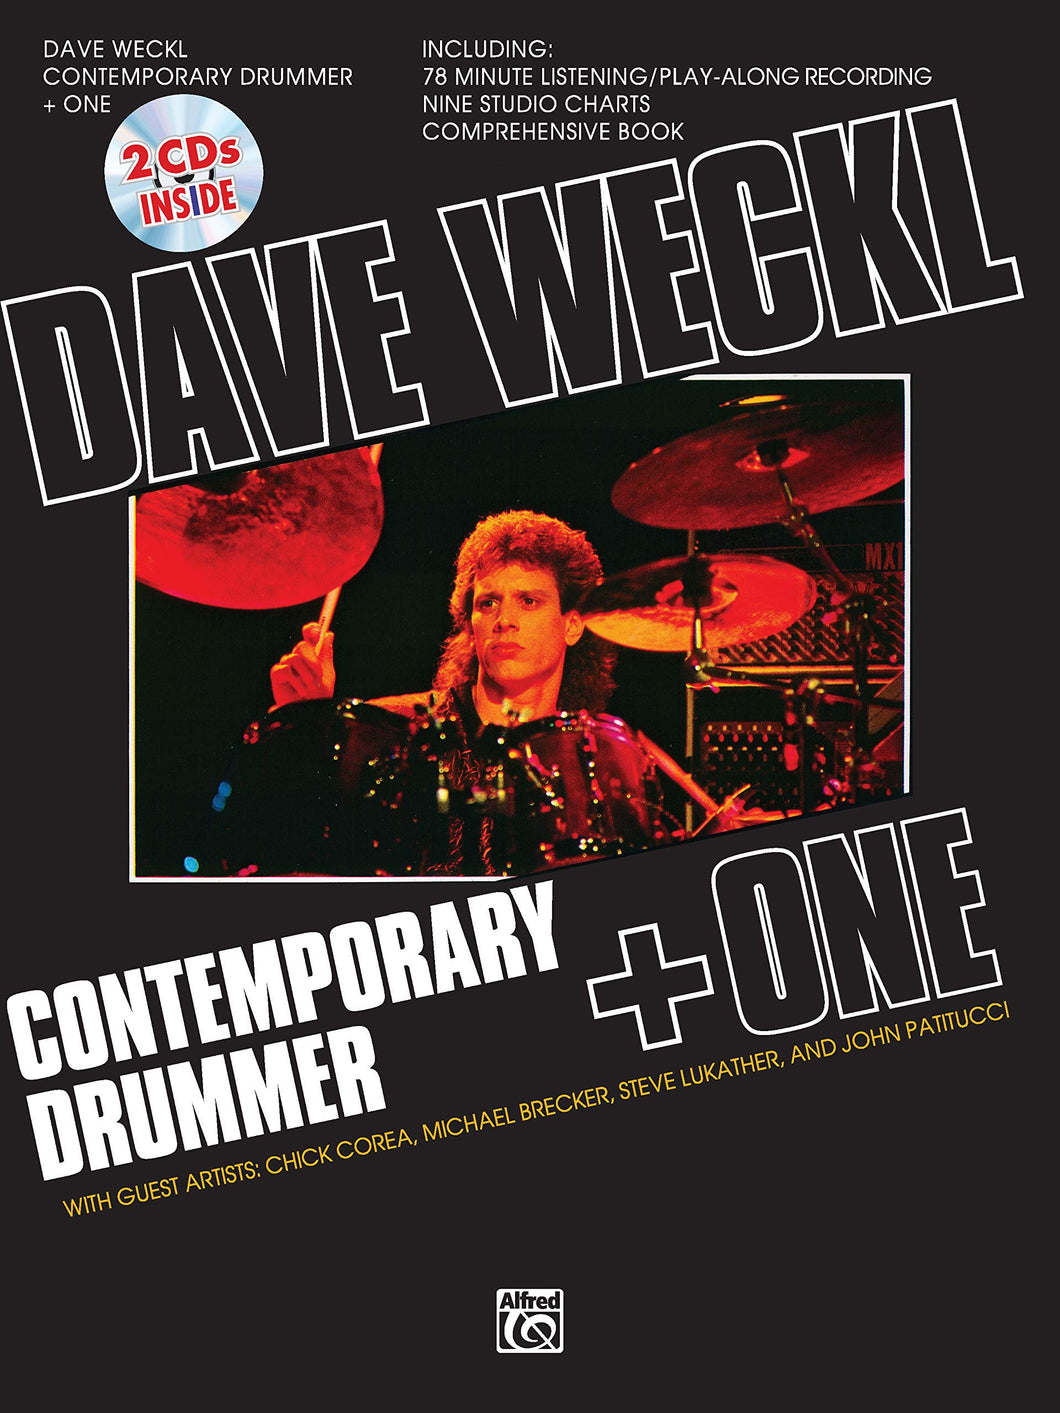 Sports Car Jingle - Dave Weckl - Collection of Drum Transcriptions / Drum Sheet Music - Alfred Music DWCDO